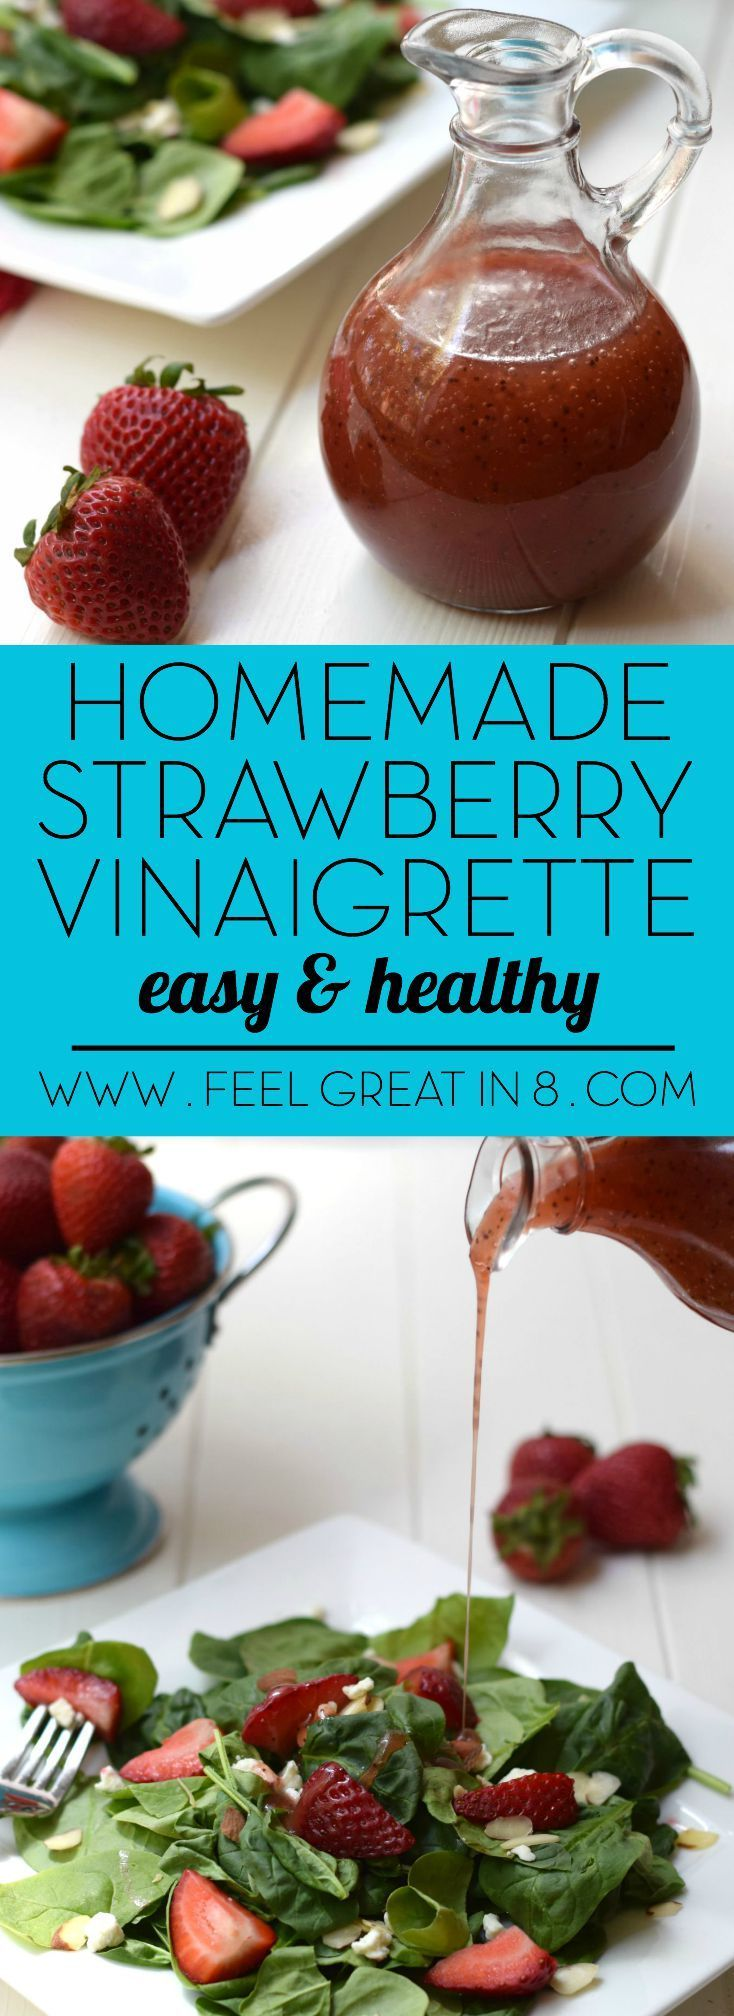 You'll love this simple, clean eating Homemade Strawberry Vinaigrette as a sweet dressing on just about any fresh salad! | Feel Great in 8